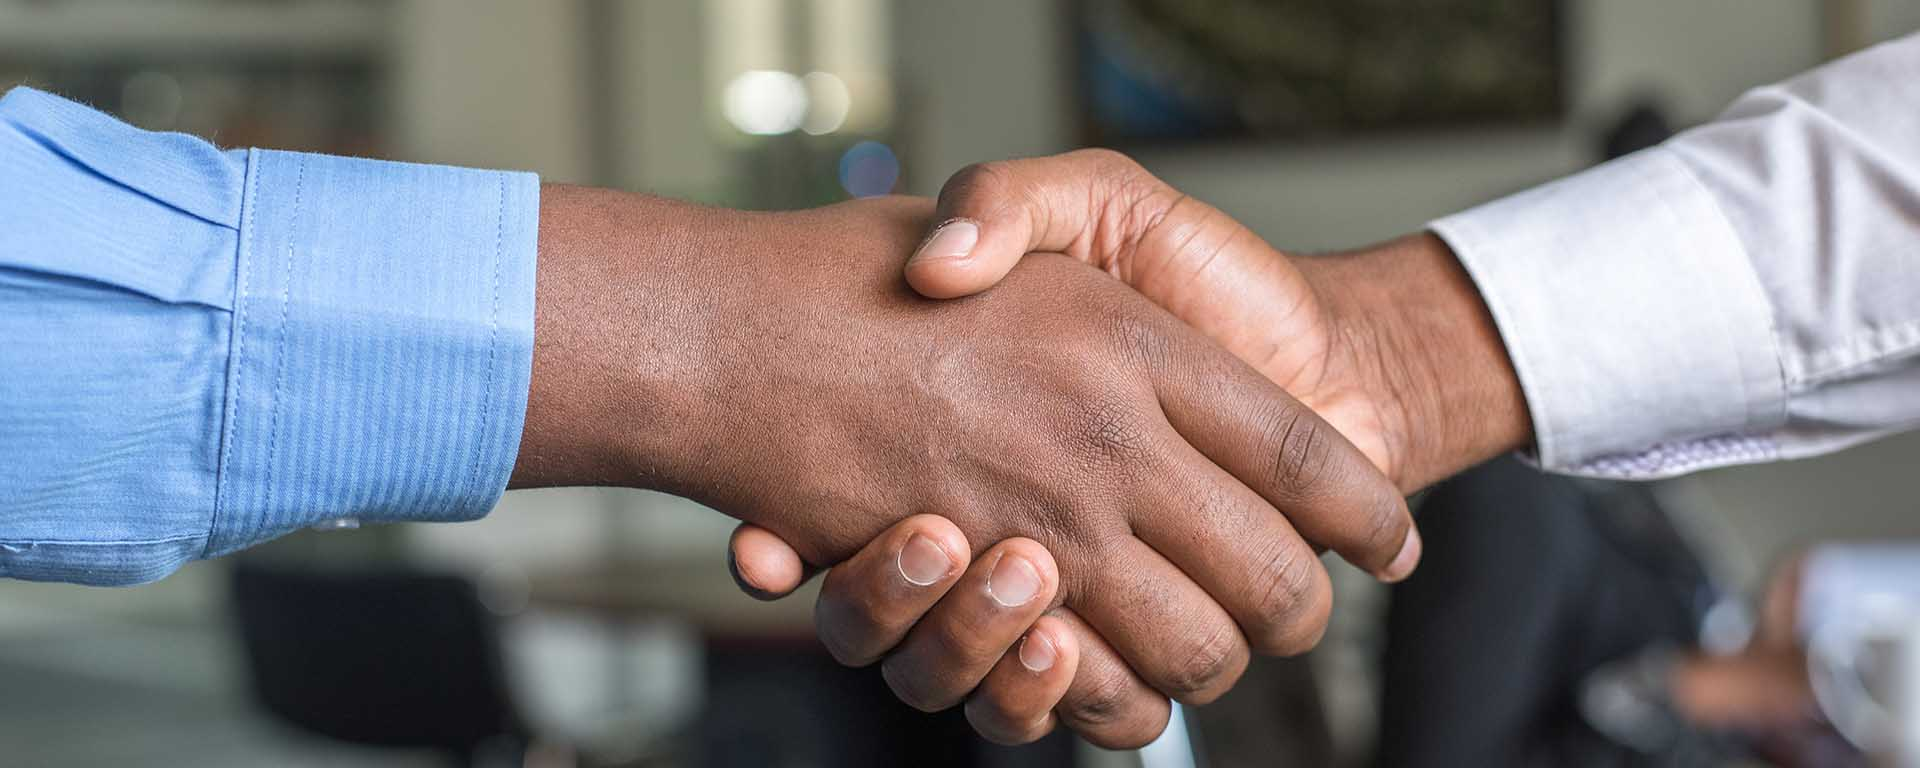 Close up of shaking hands of a Black and Brown man